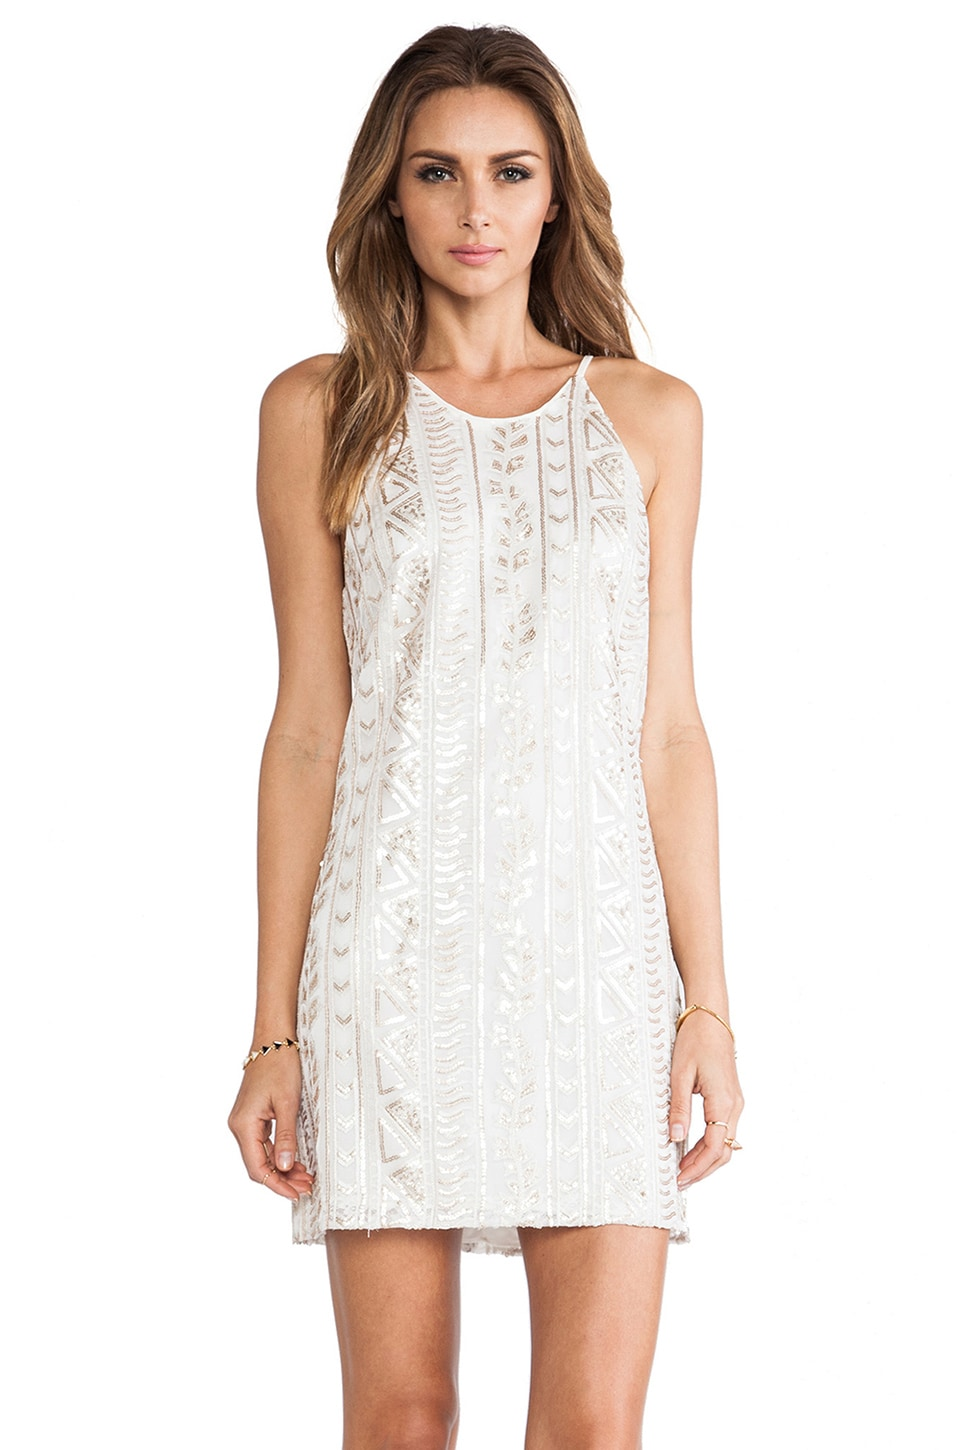 DRESS THE POPULATION Jamie Sequin Tank Dress in White & Gold